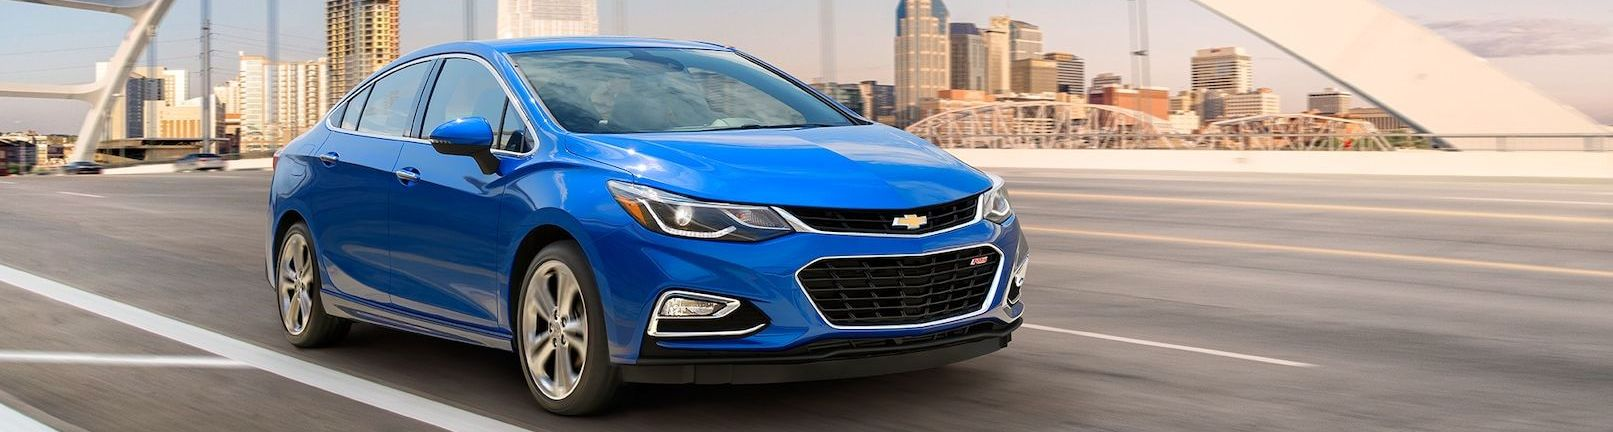 2018 Chevrolet Cruze vs 2018 Toyota Corolla near Merrillville, IN